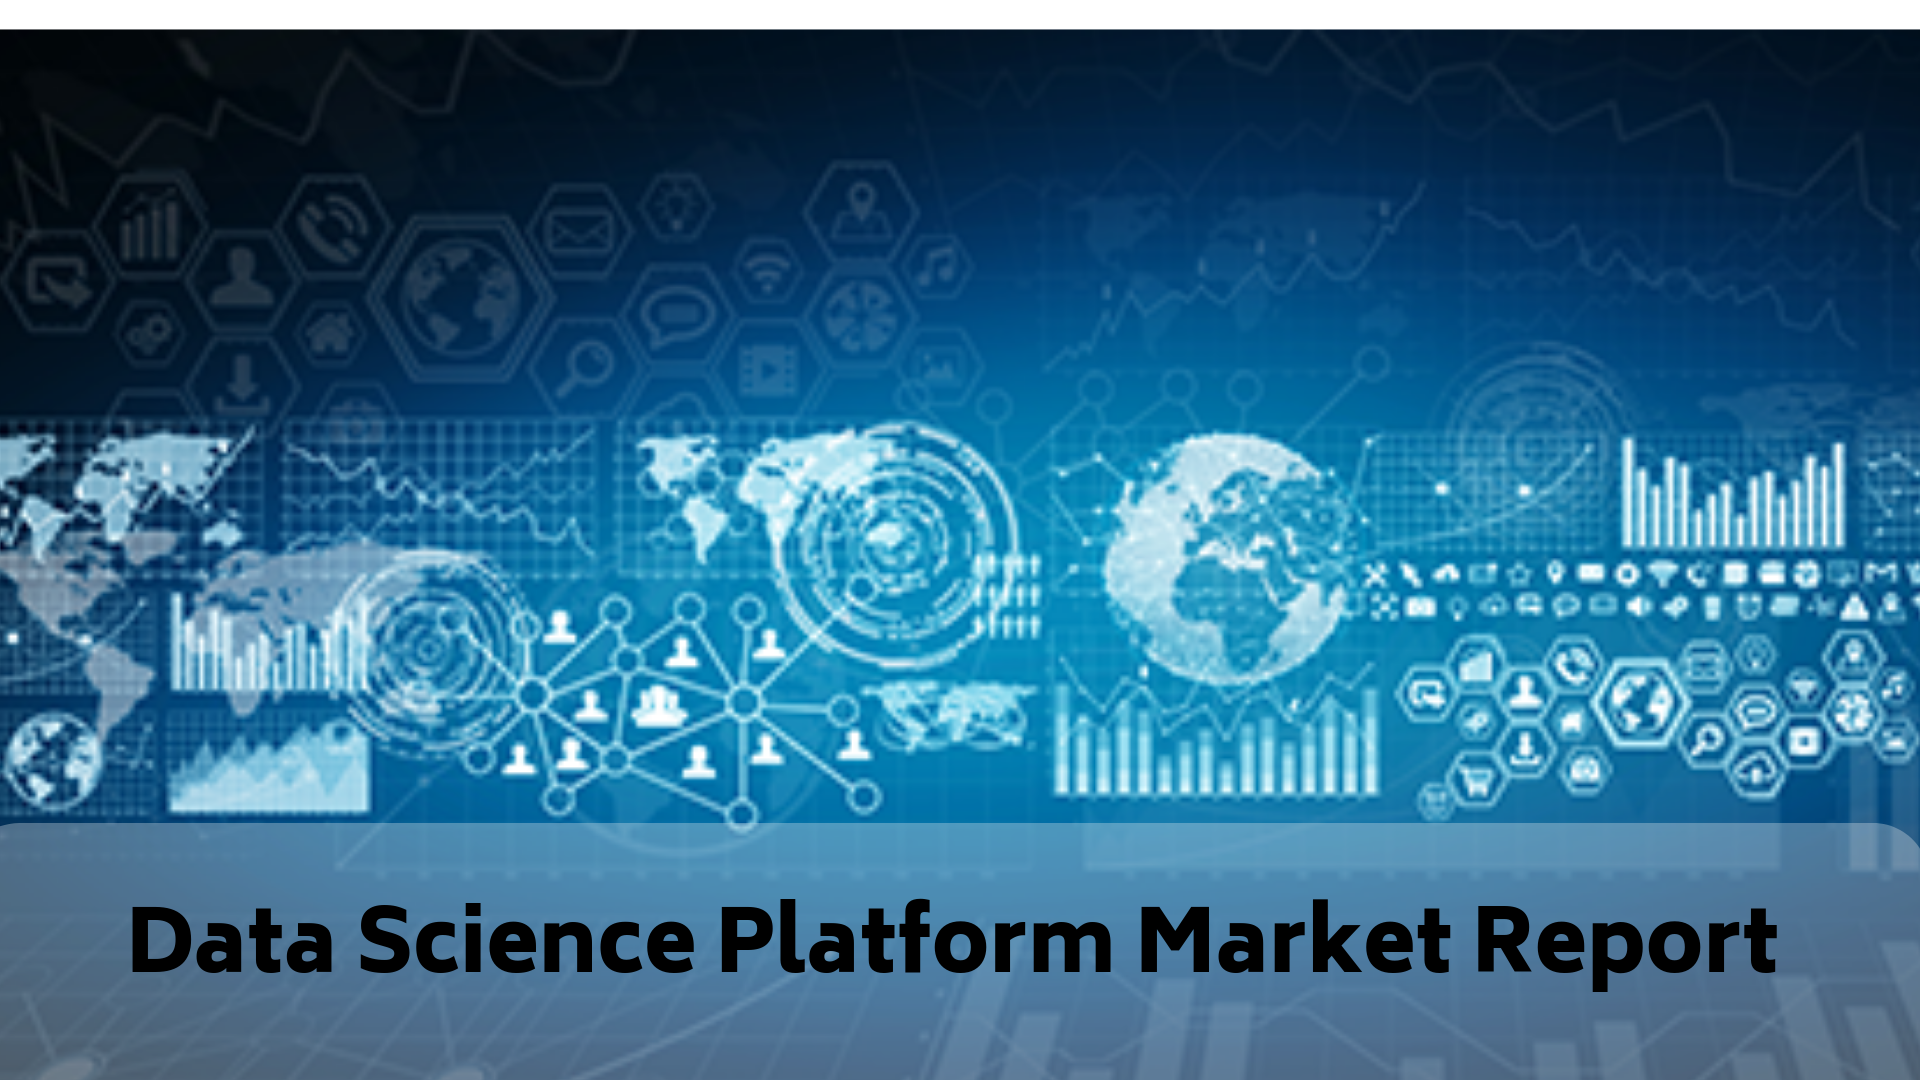 High Growth Opportunities Data Science Platform Market CAGR of 38.84% by 2025: Trends, Opportunities faced by Top Players like Microsoft, Ibm, Google, Wolfram, Datarobot, Cloudera, Rapidminer, Domino Data Lab, Dataiku, Alteryx